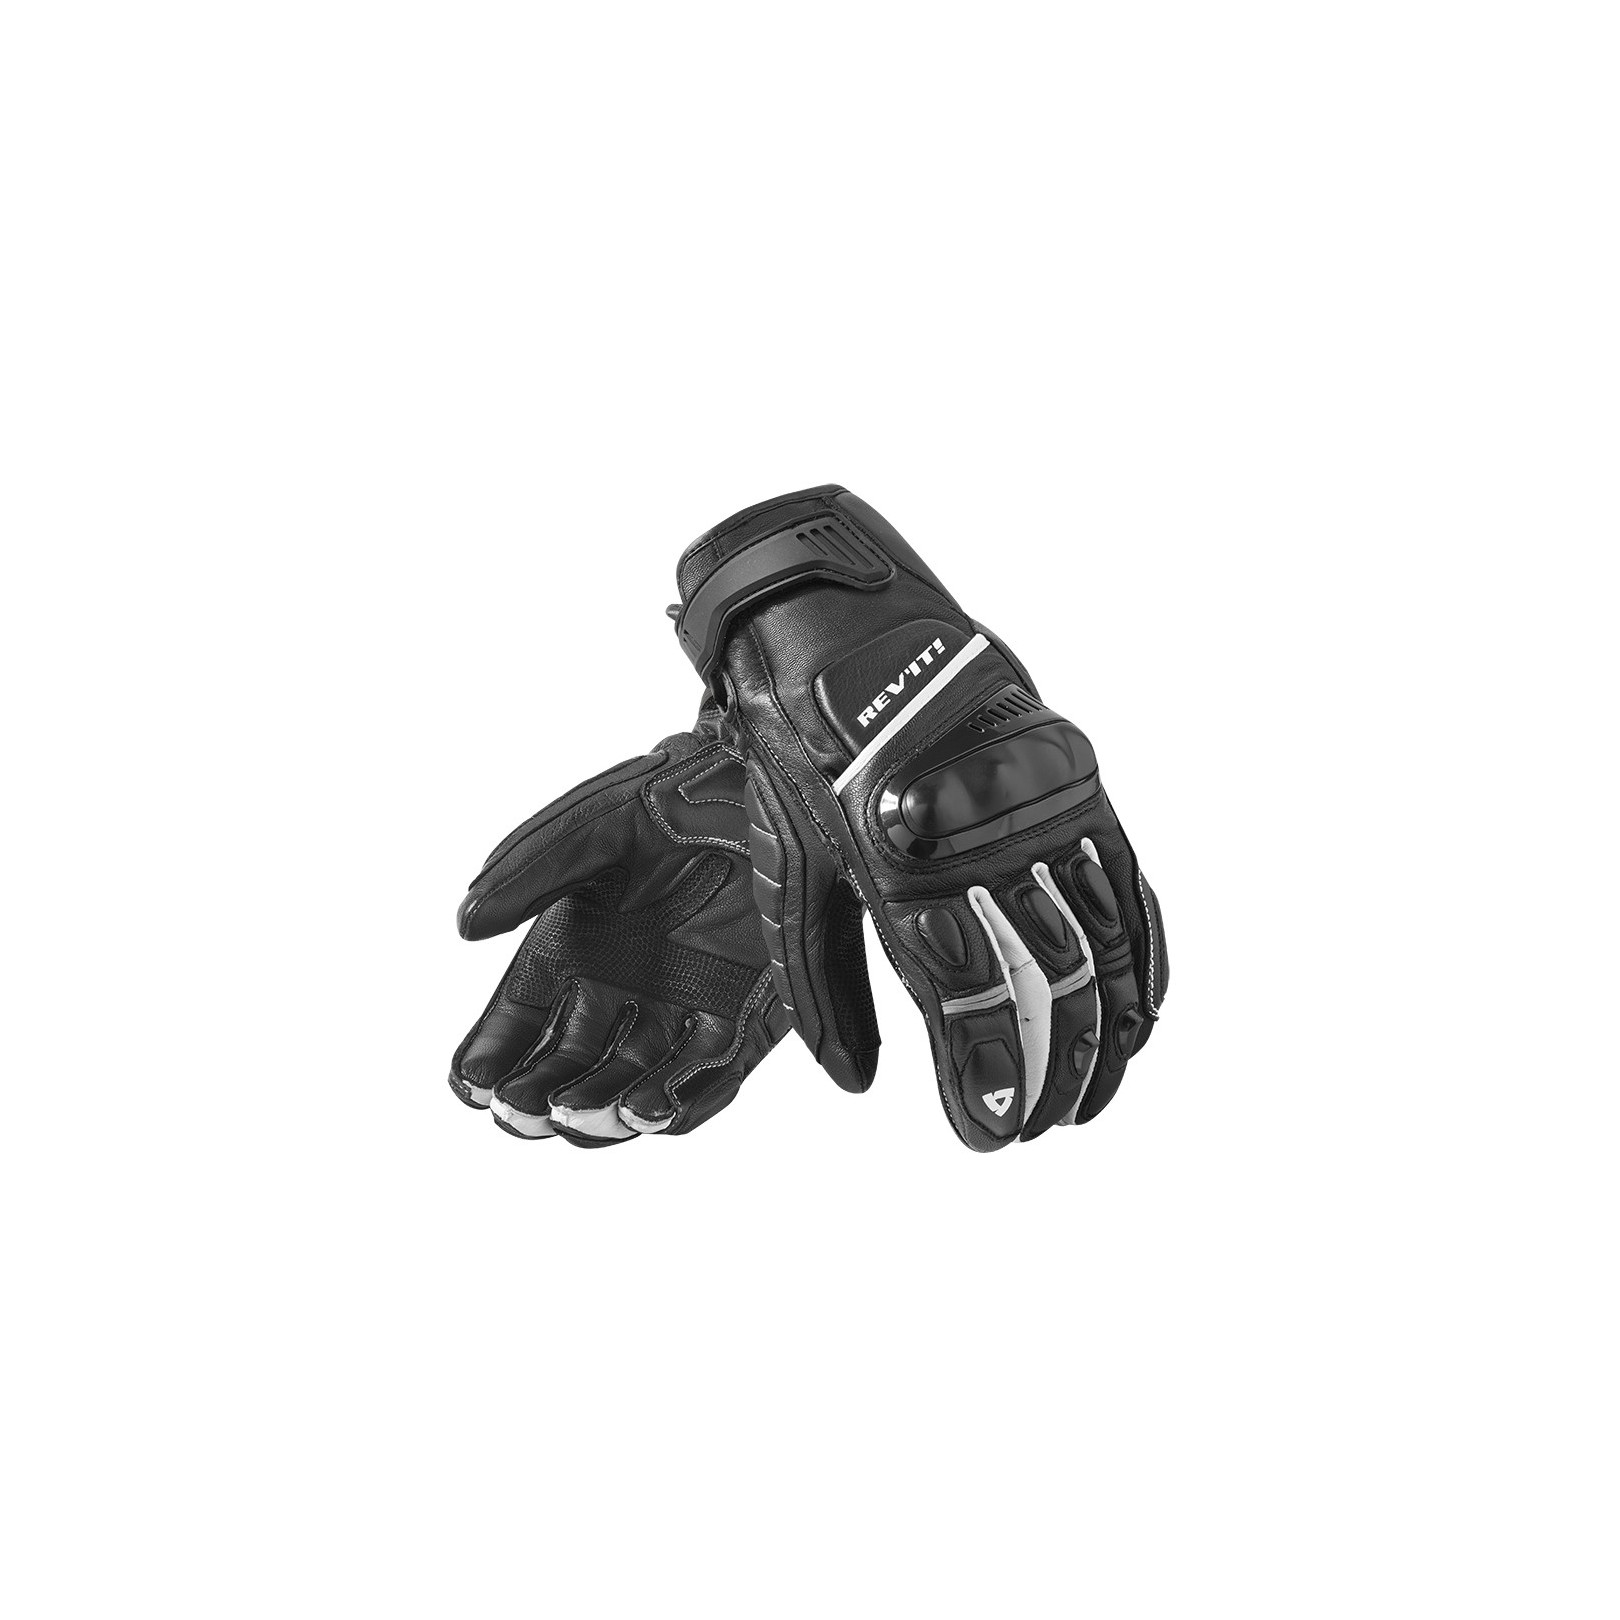 Gants REV'IT Chicane Noir Blanc